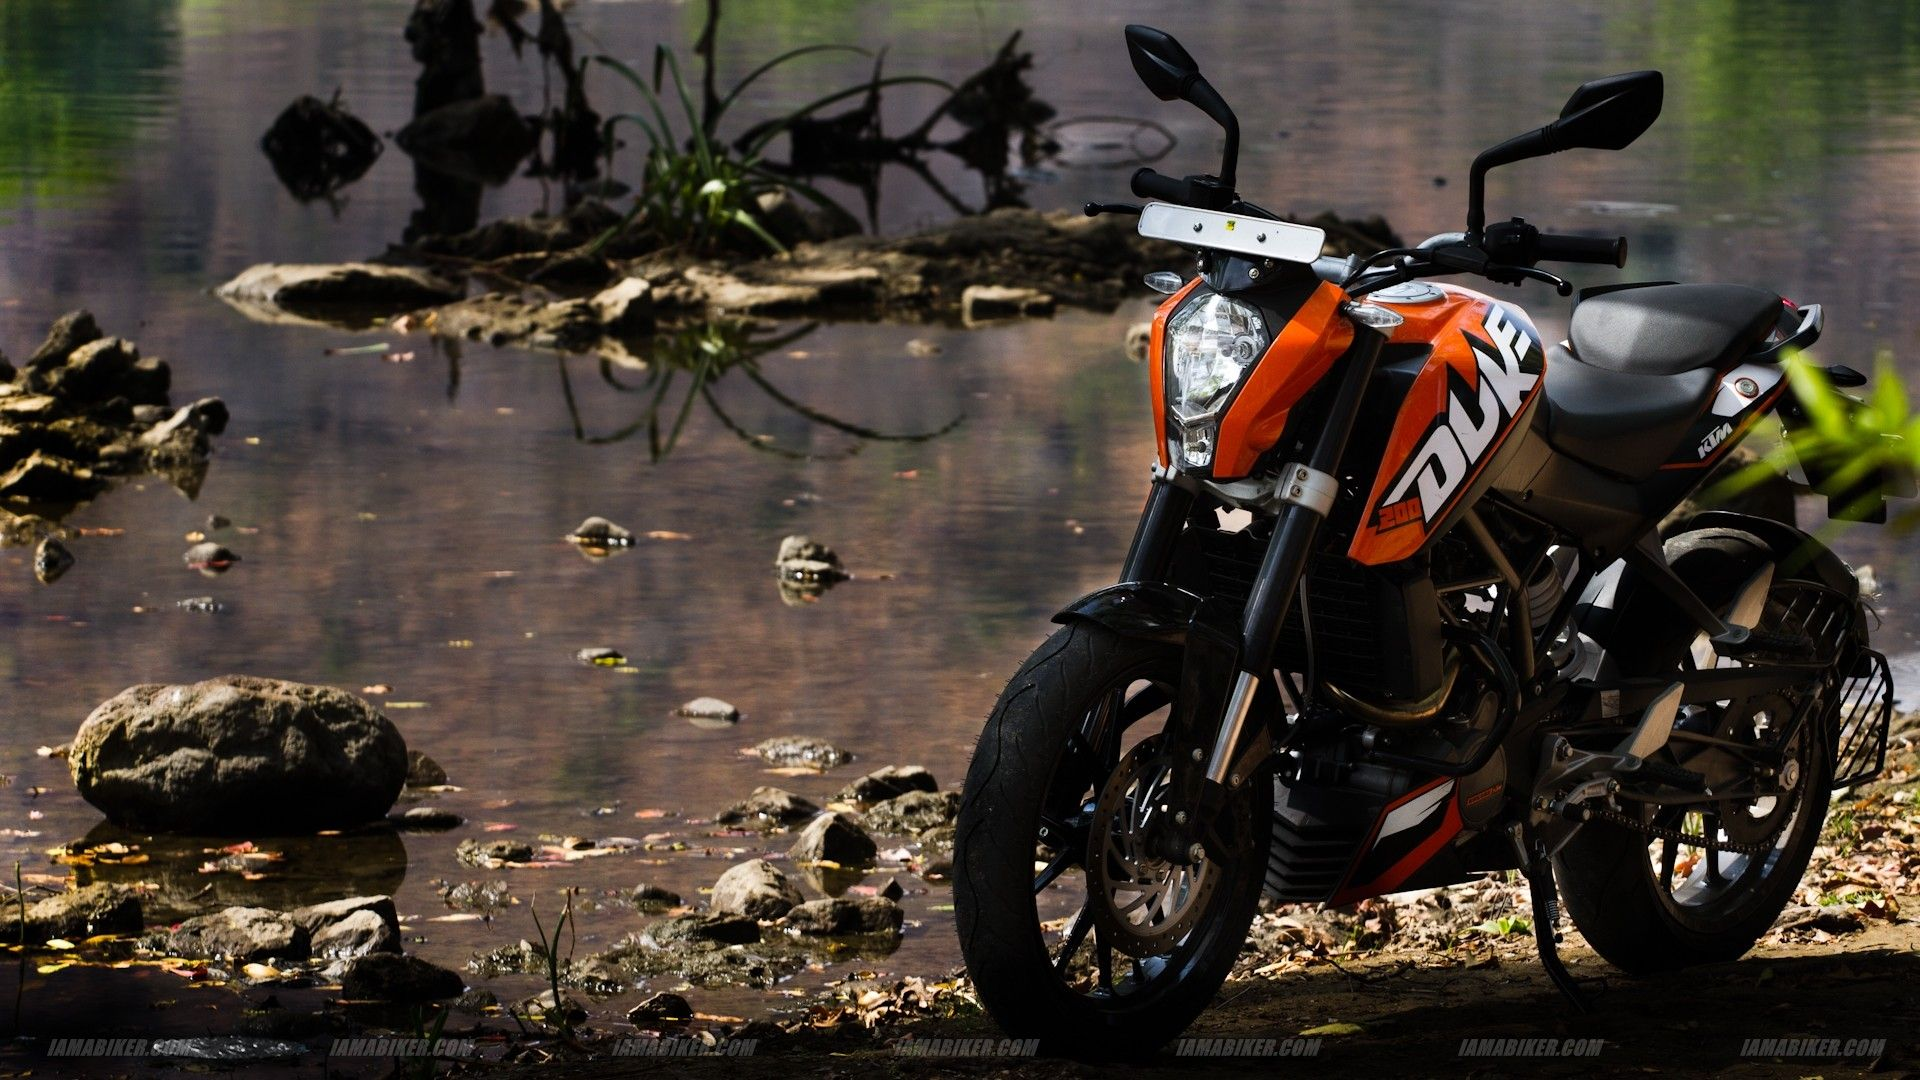 1920x1080 Ktm Duke 200 Wallpaper Click For High Resolution Ktm